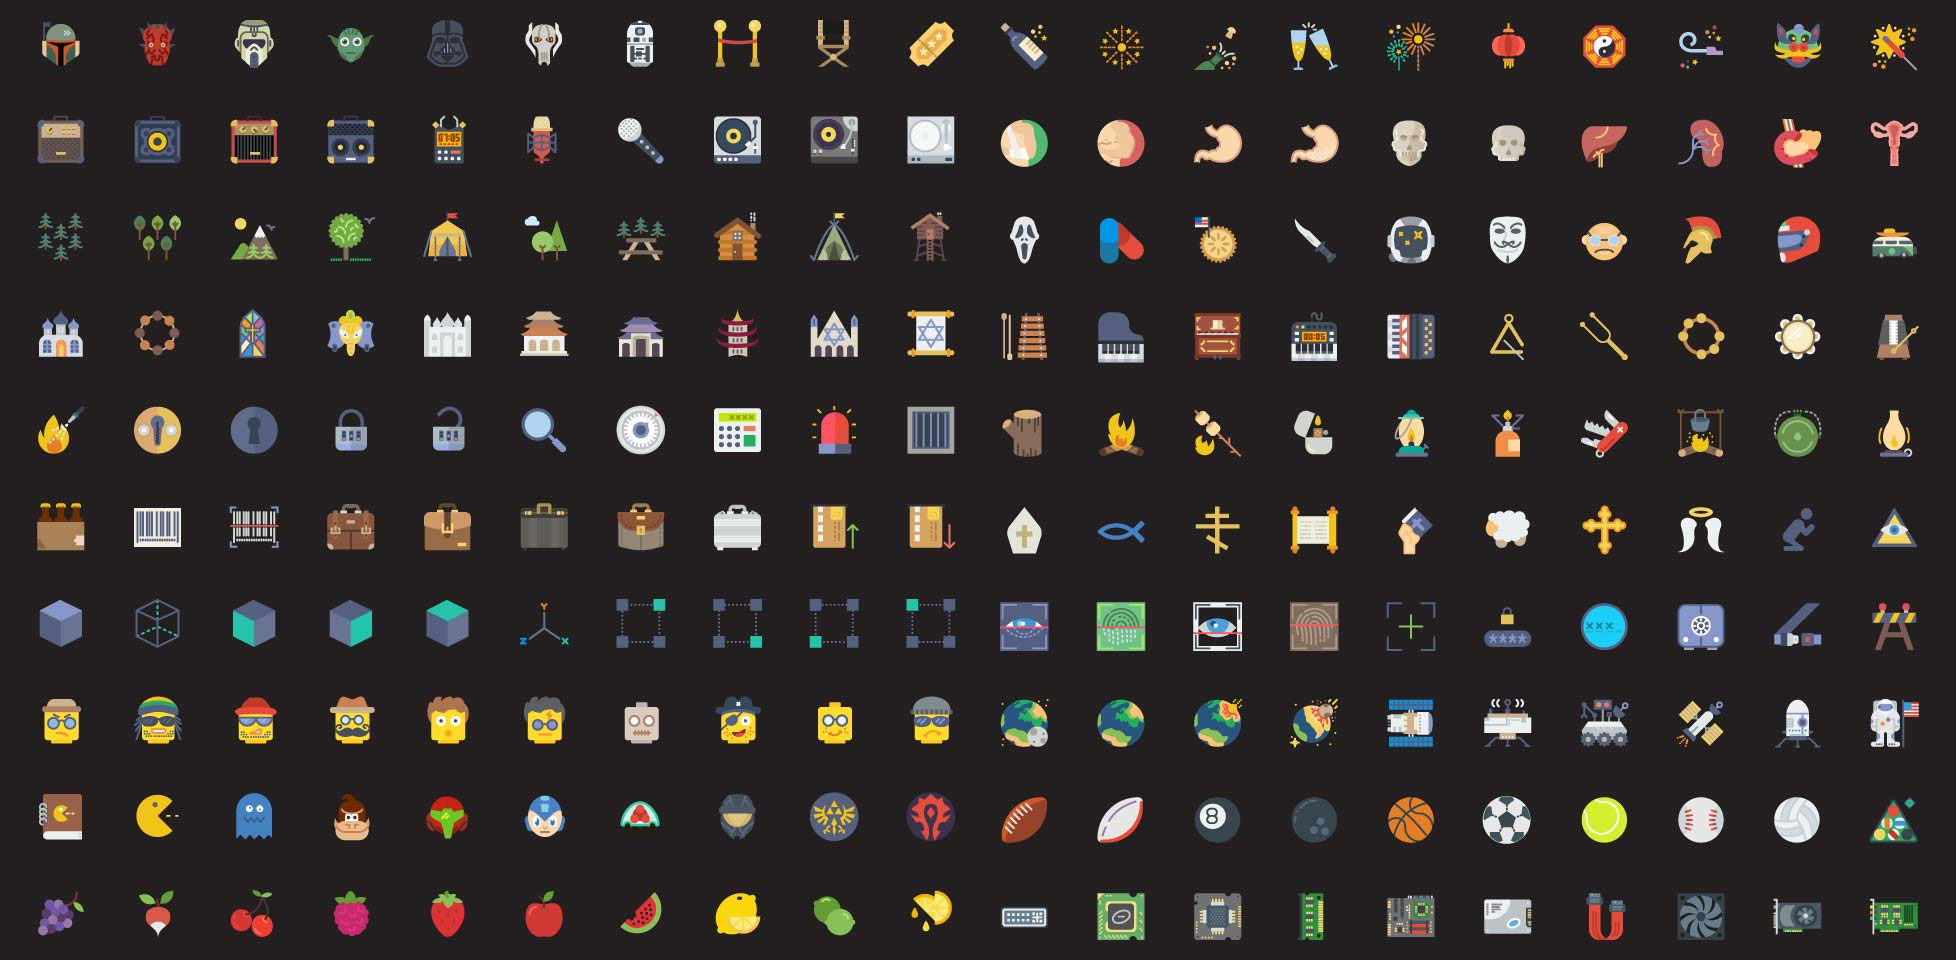 Free download: 200 flat icons from Smashicons